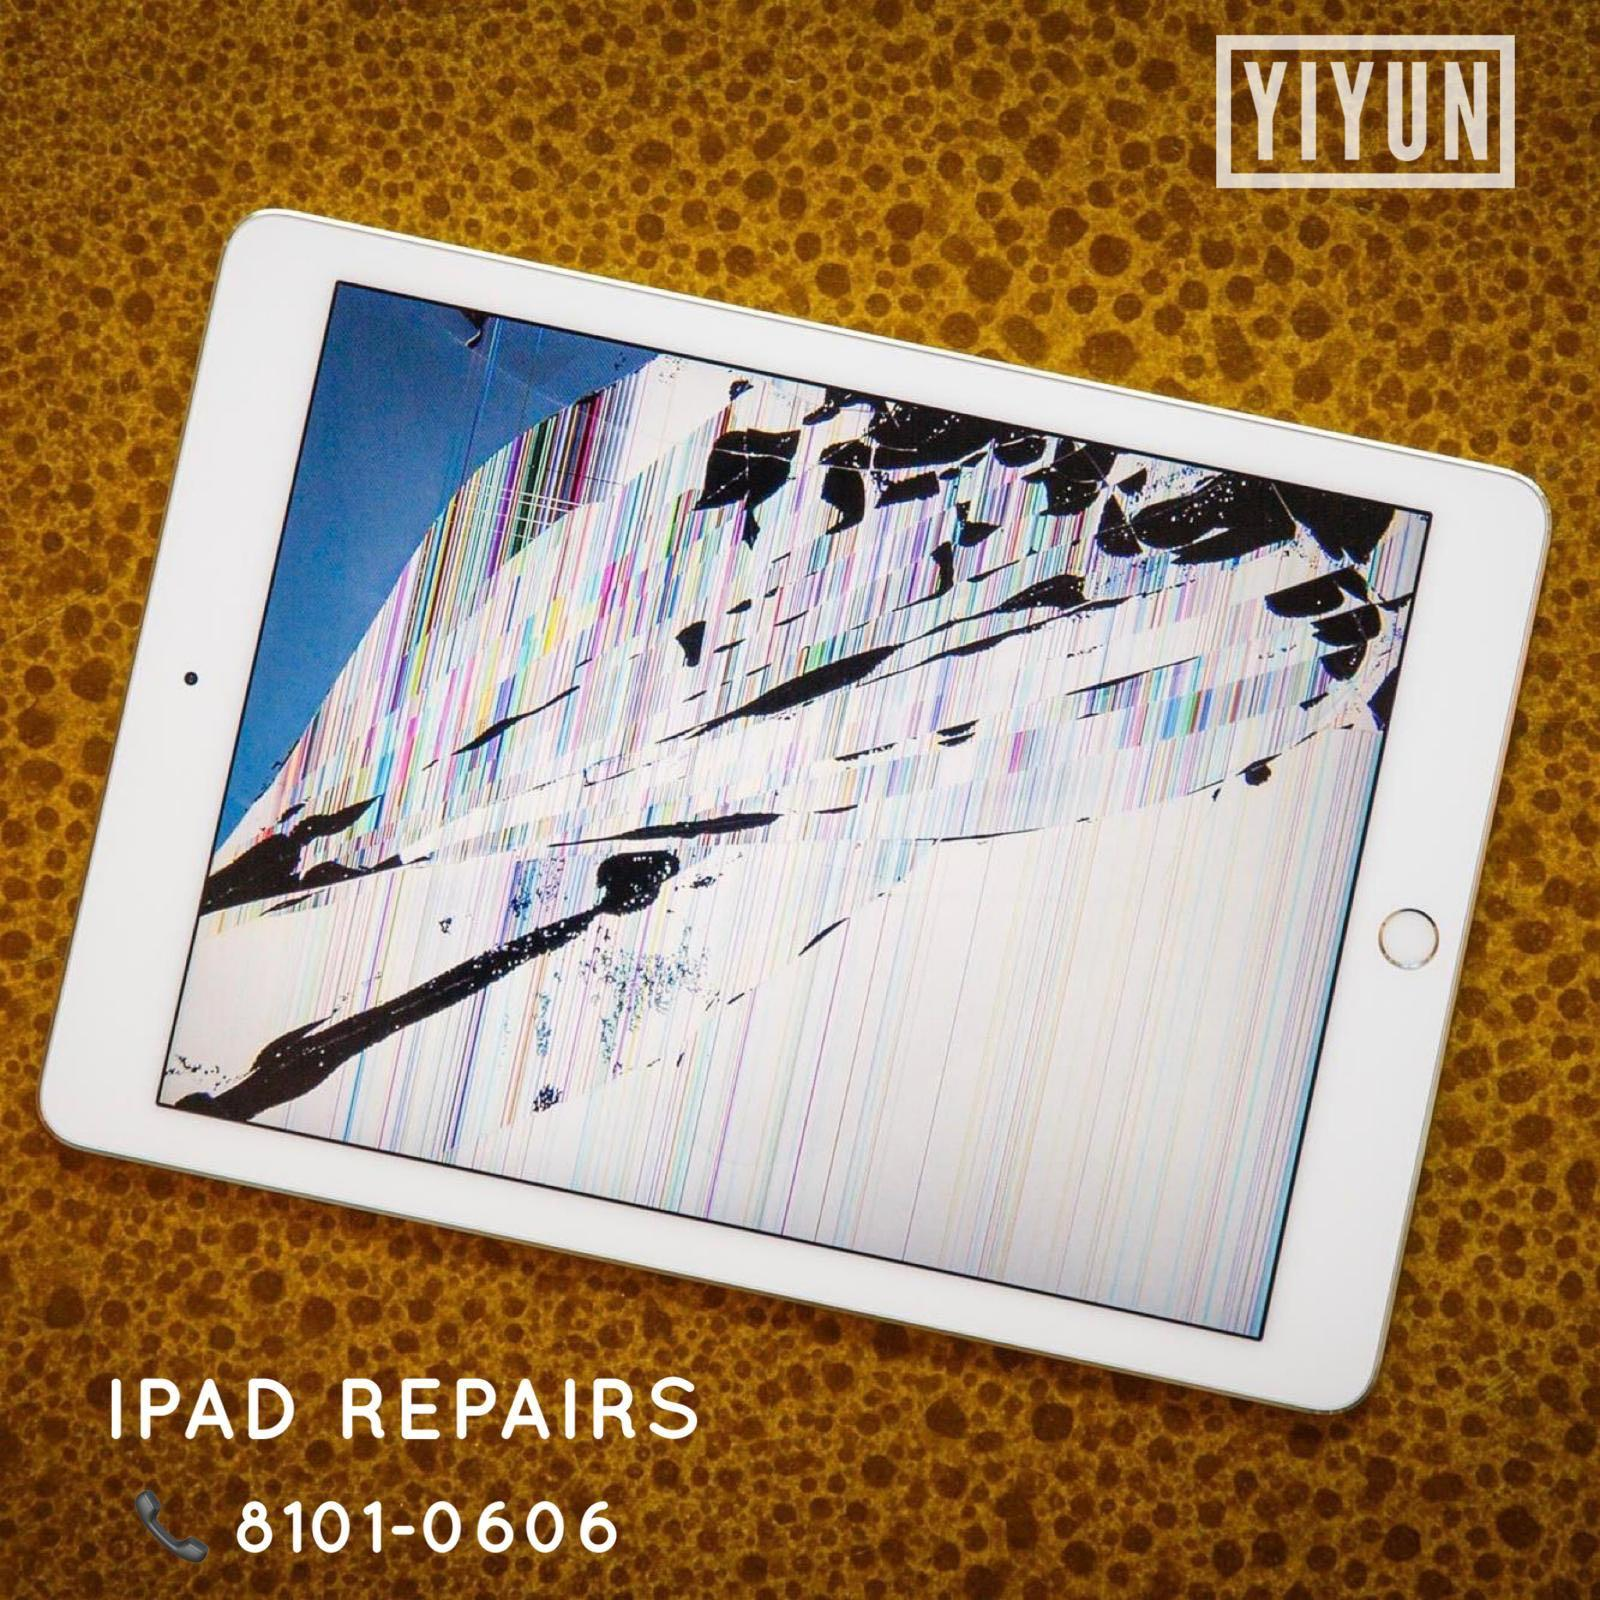 30min iPad Repair, iPad Crack Screen, iPad LCD, iPad Battery